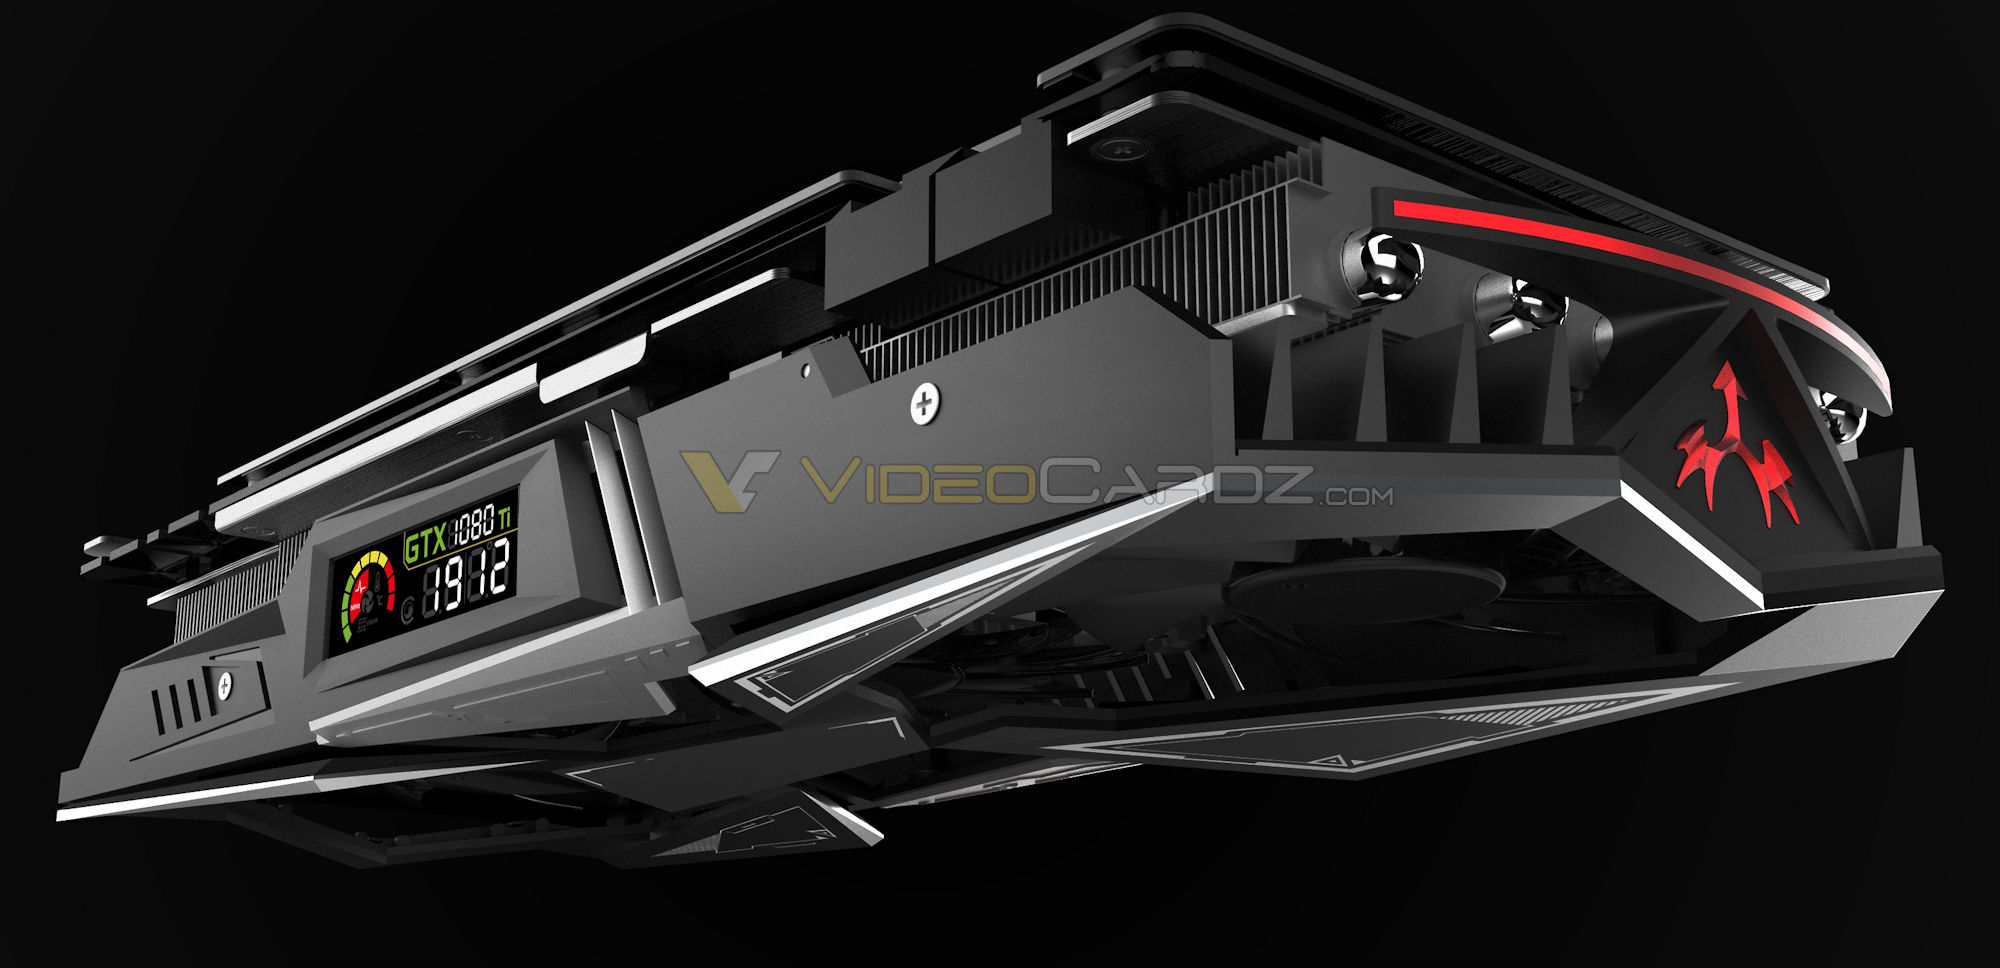 colorful shows off igame gtx 1080 ti with 16 2 phase. Black Bedroom Furniture Sets. Home Design Ideas